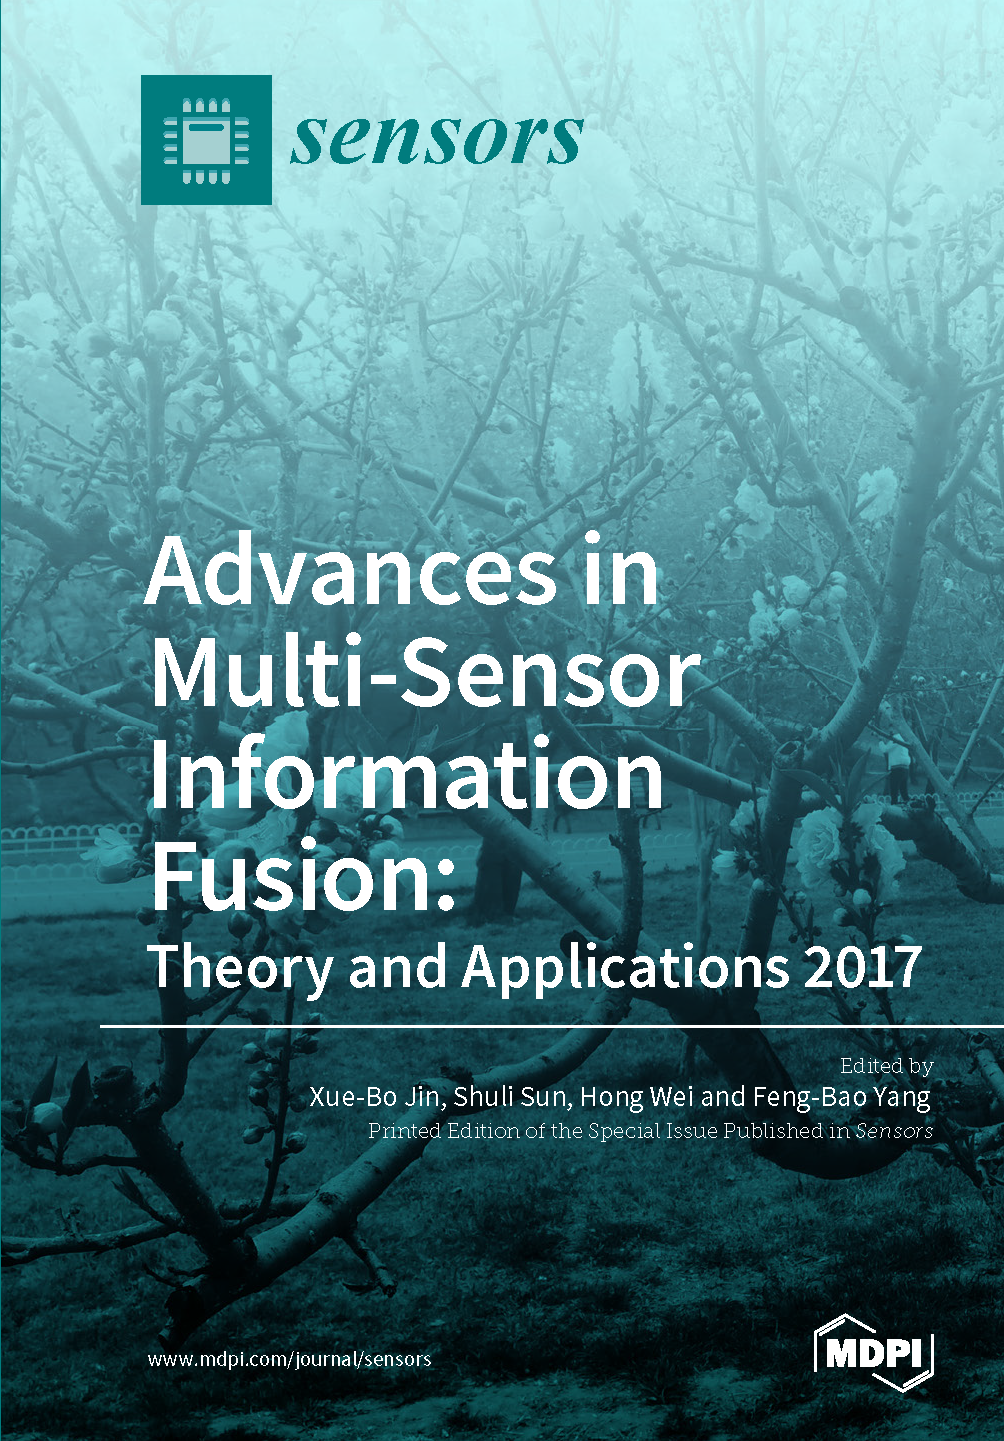 Advances in Multi-Sensor Information Fusion: Theory and Applications 2017